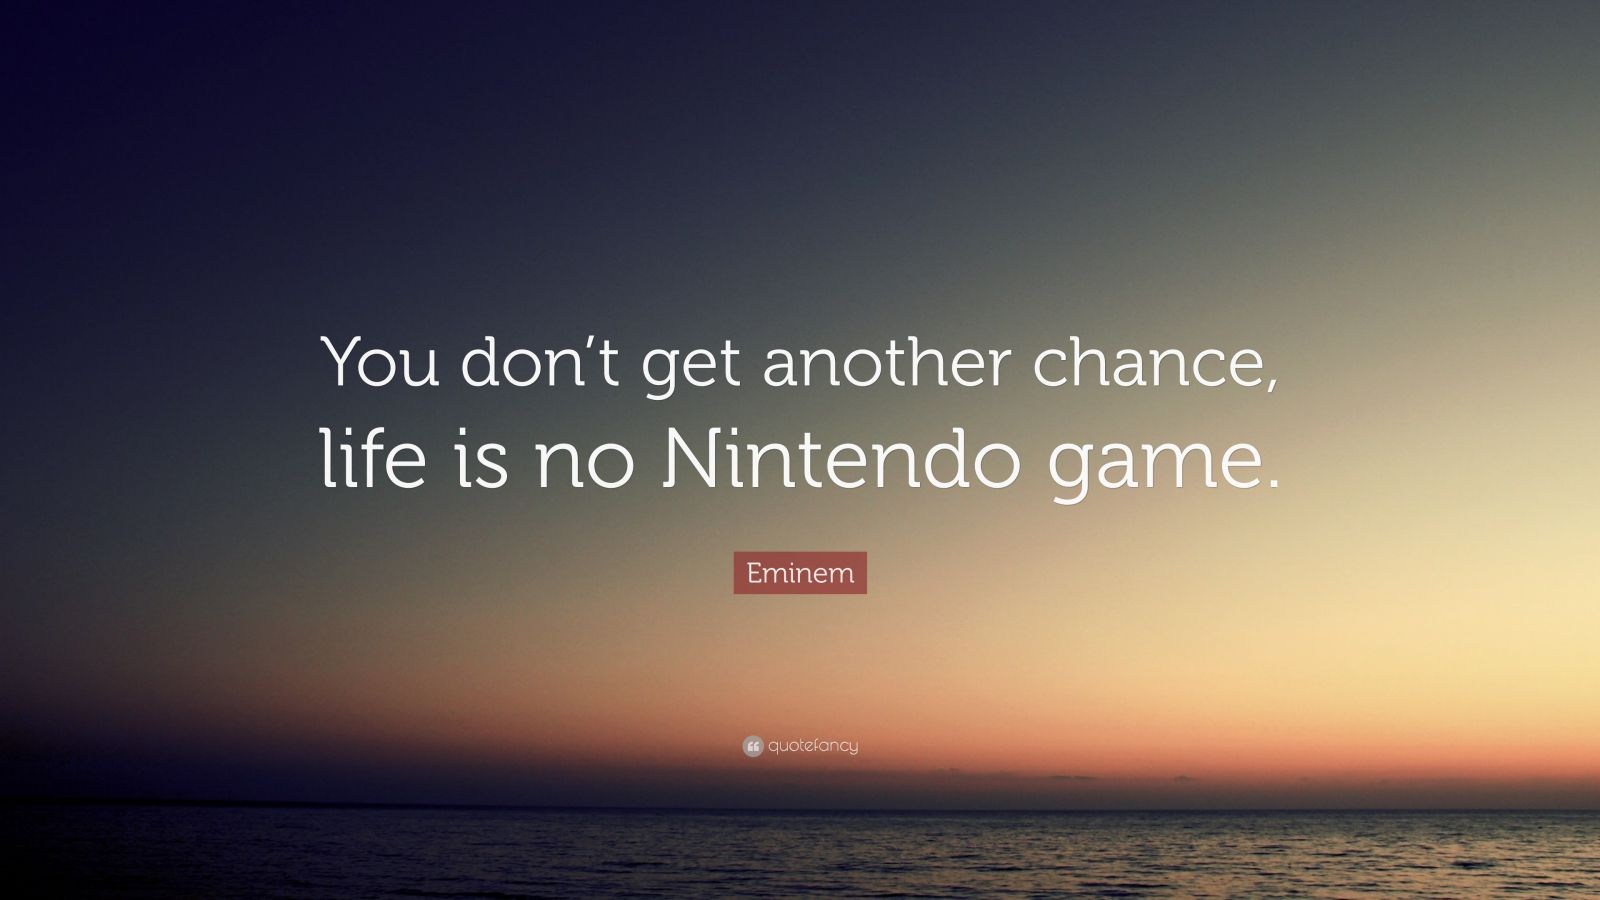 Socrates Wallpaper Quotes Eminem Quote You Don T Get Another Chance Life Is No